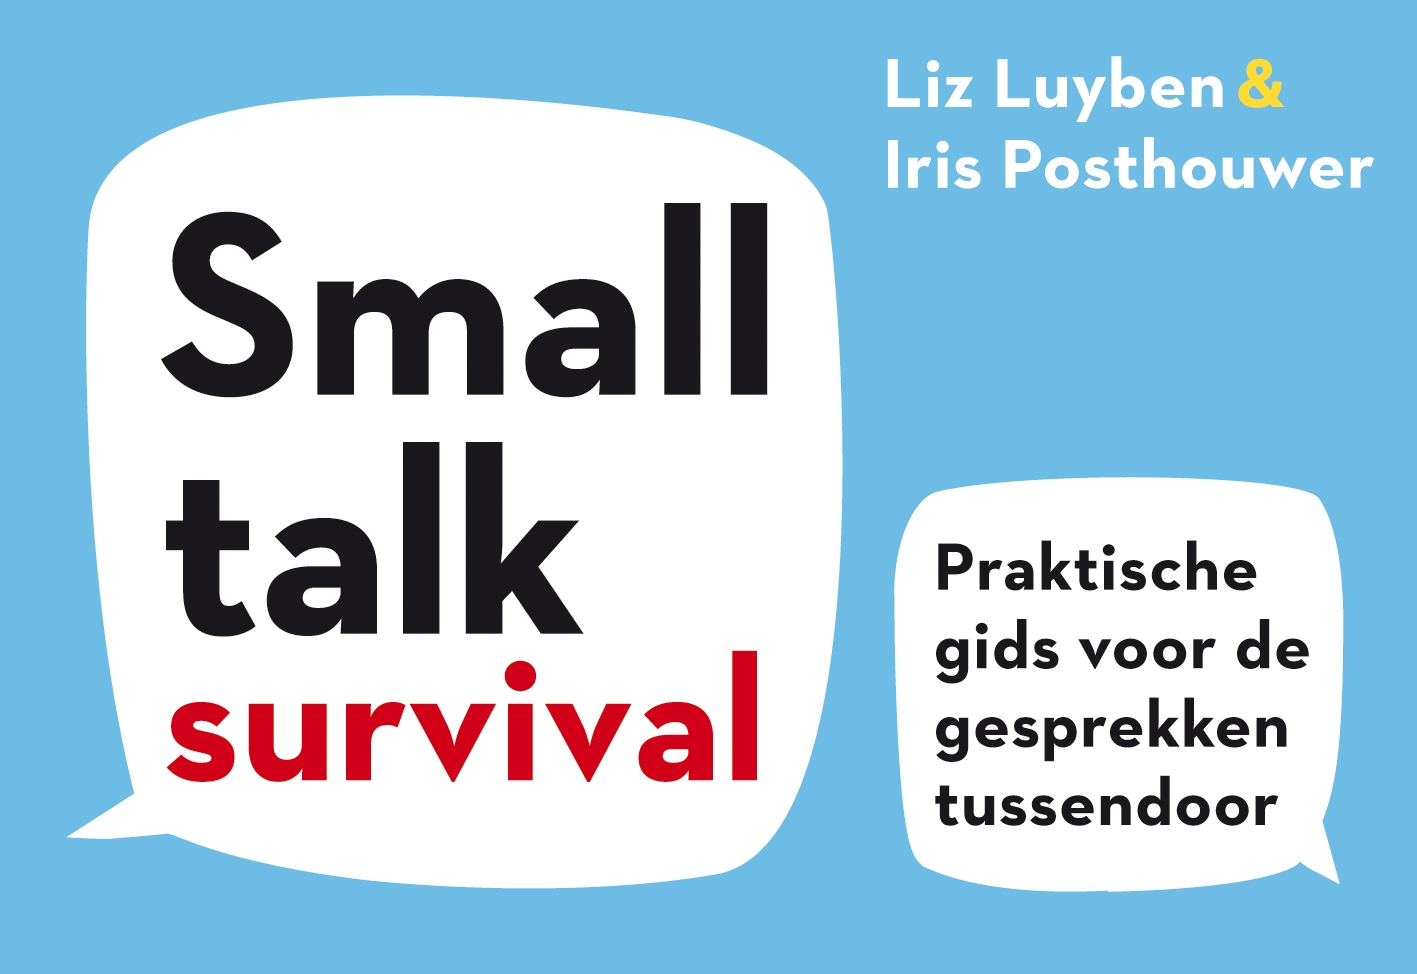 Iris Posthouwer, Liz Luyben,Smalltalk Survival